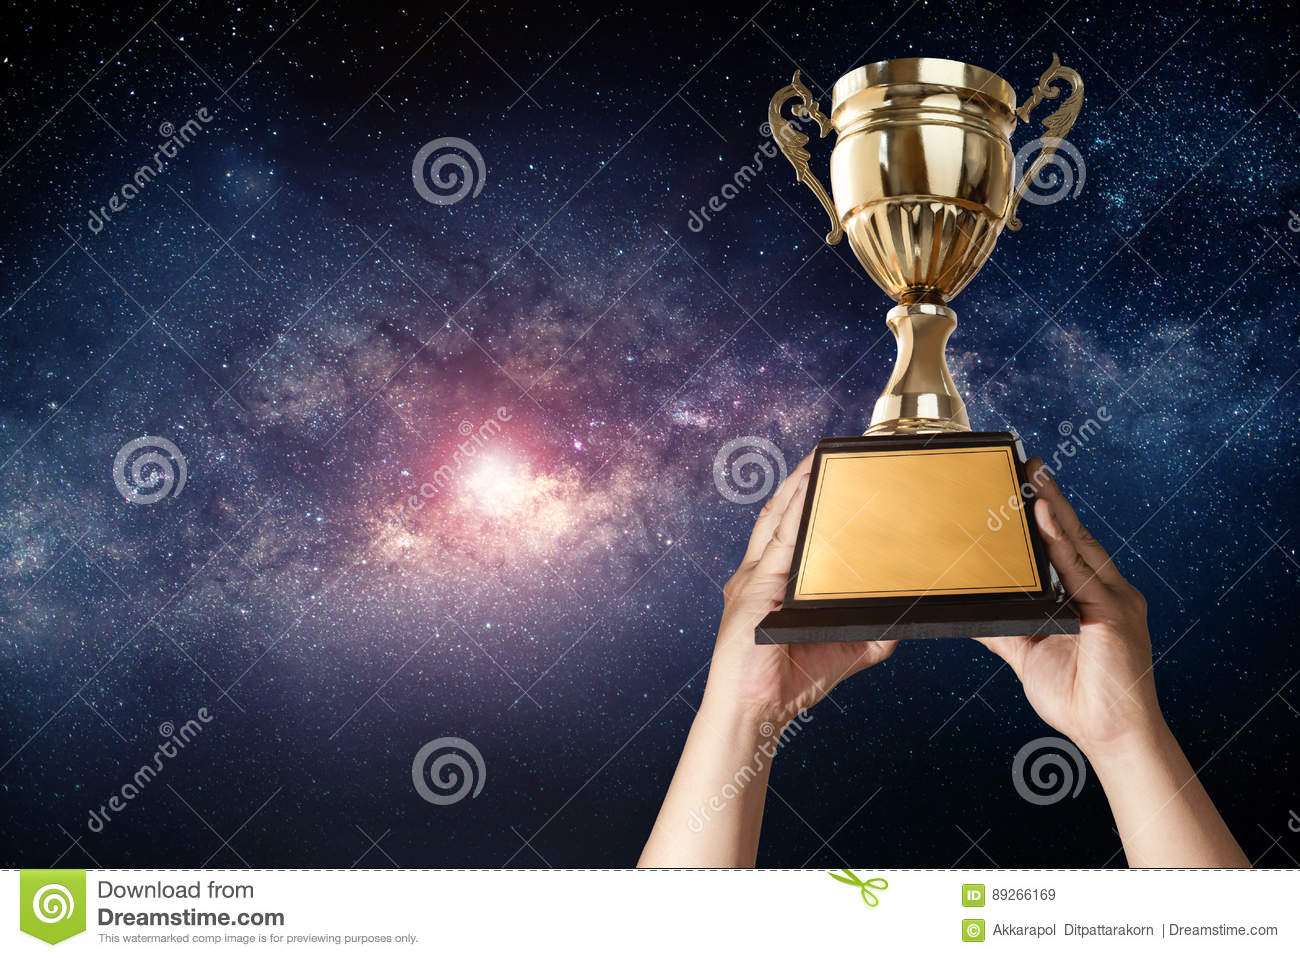 a man holding up a gold trophy cup with milky way sky background